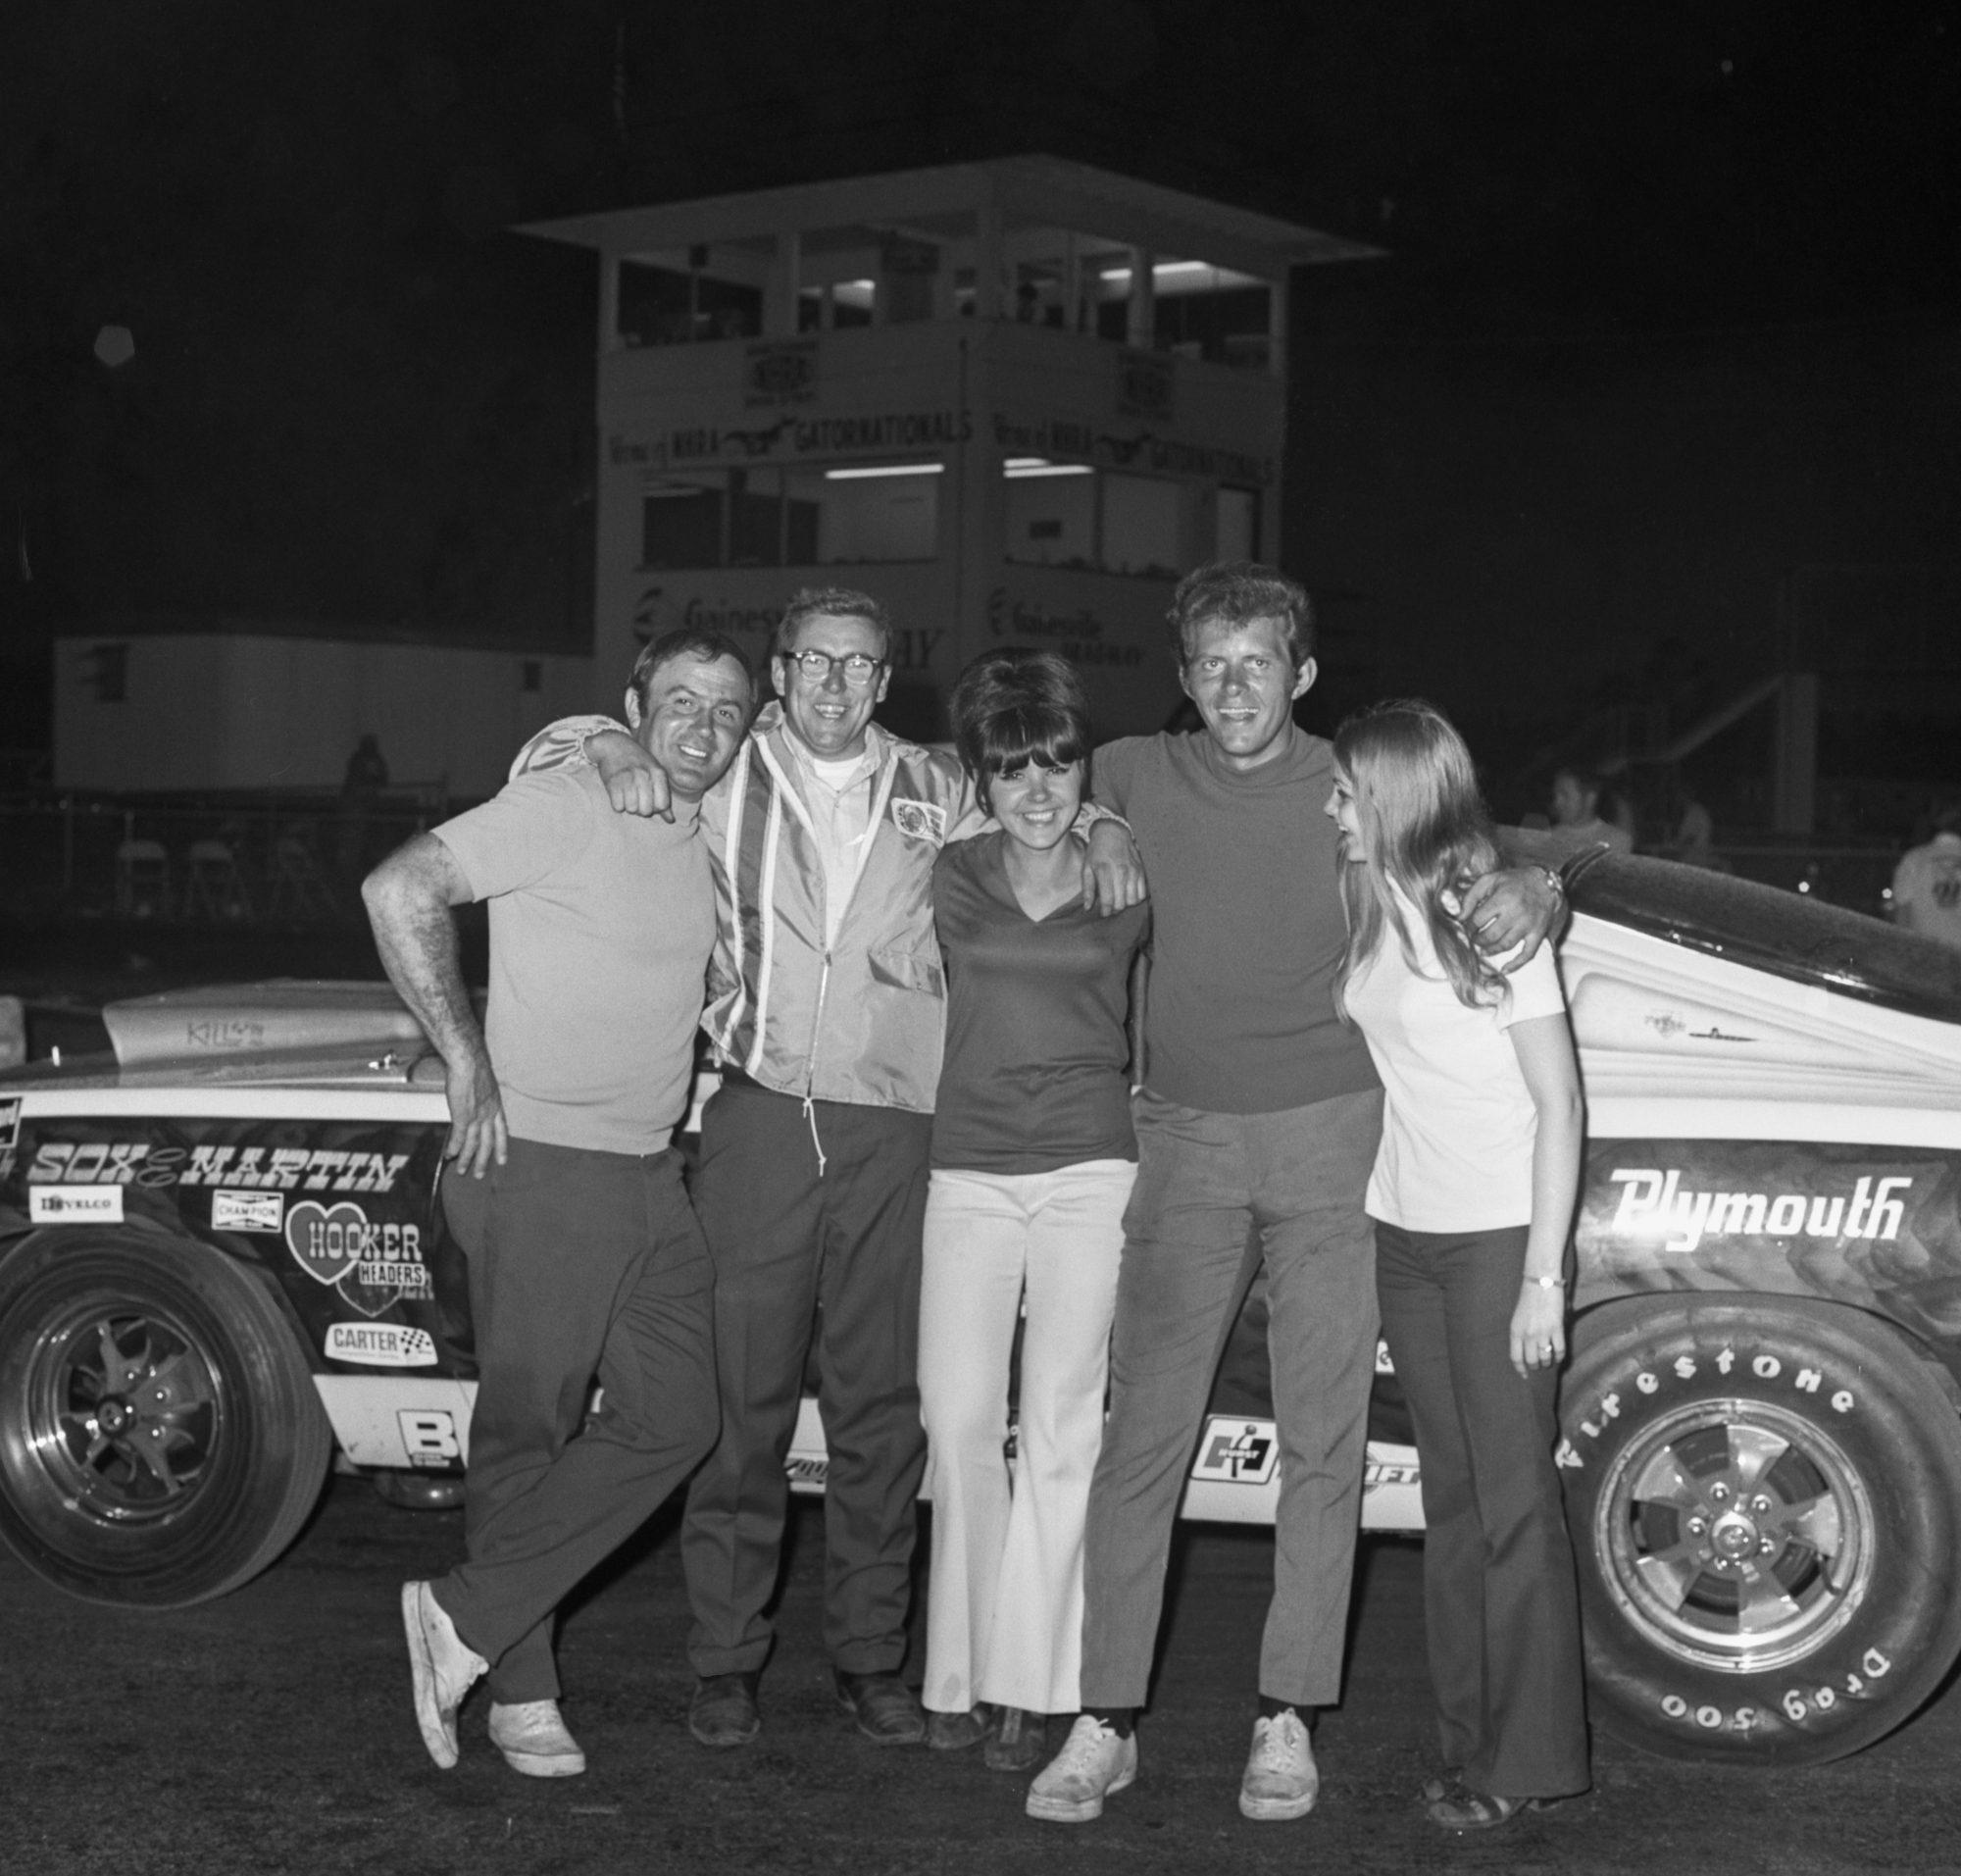 Herb McCandless posing with friends in front of his race car